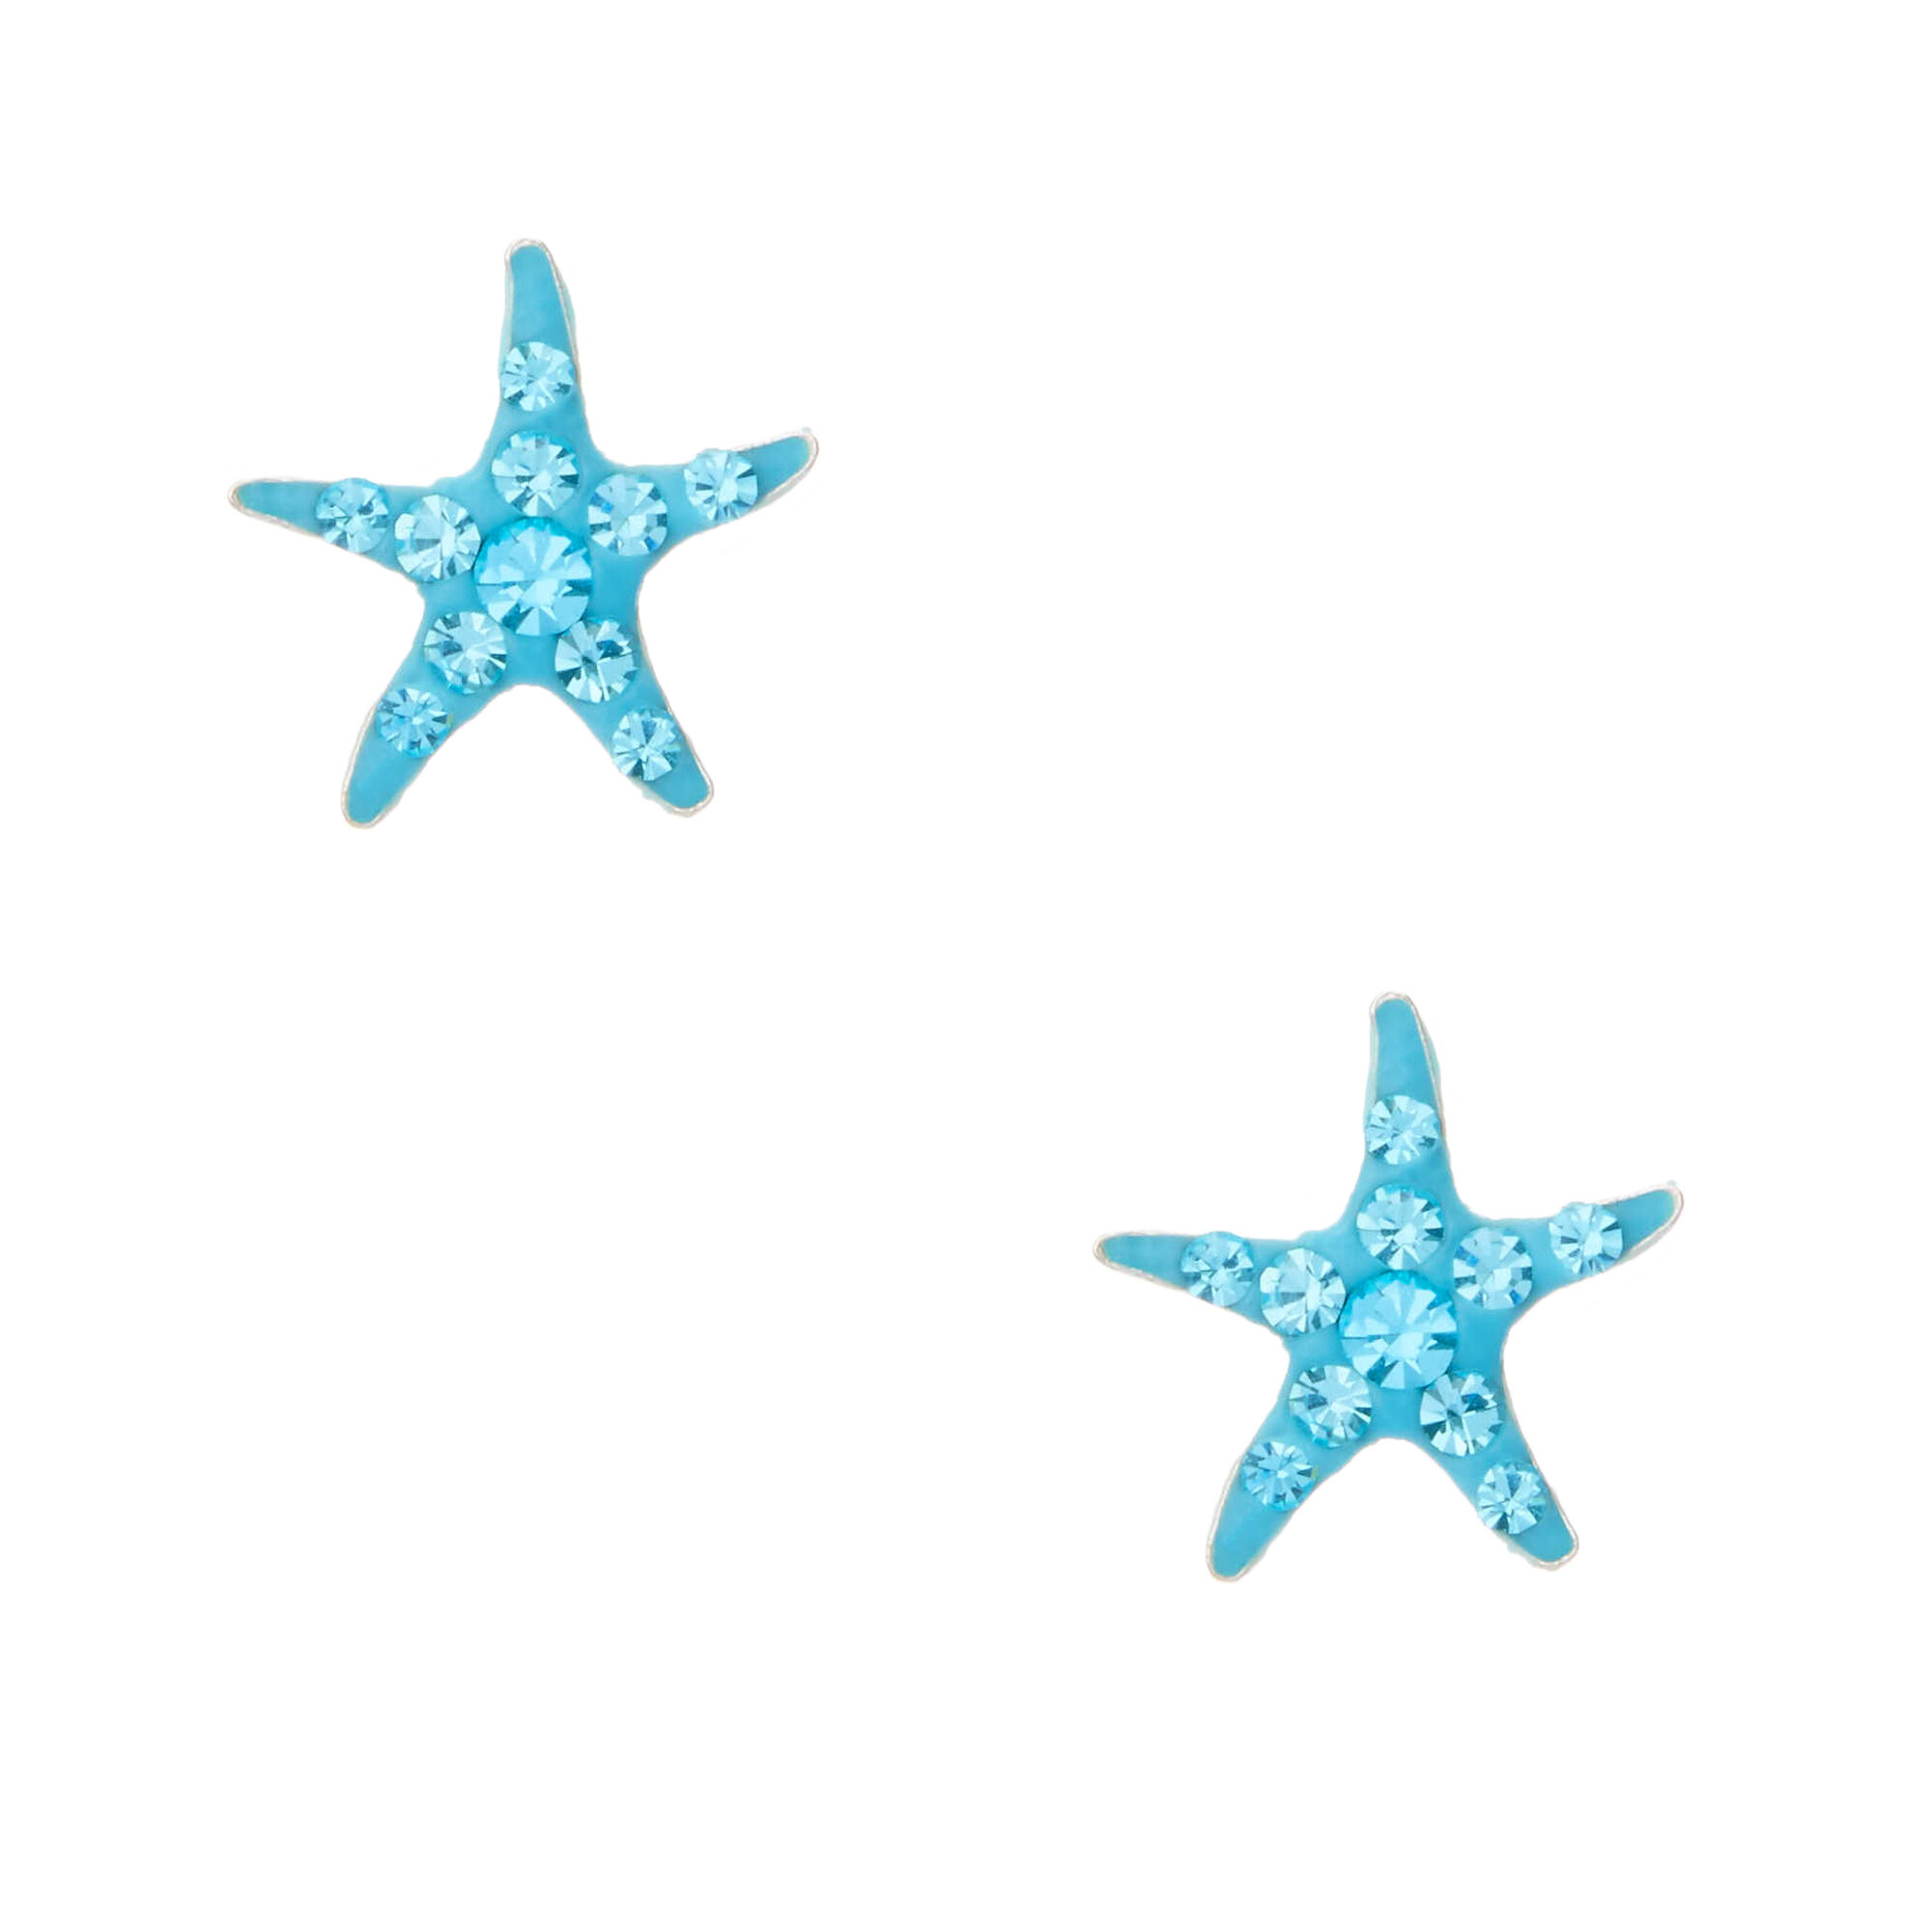 silver johnlewis main at zirconia john sabo buythomas earrings pdp online lewis stud com thomas cubic rsp starfish